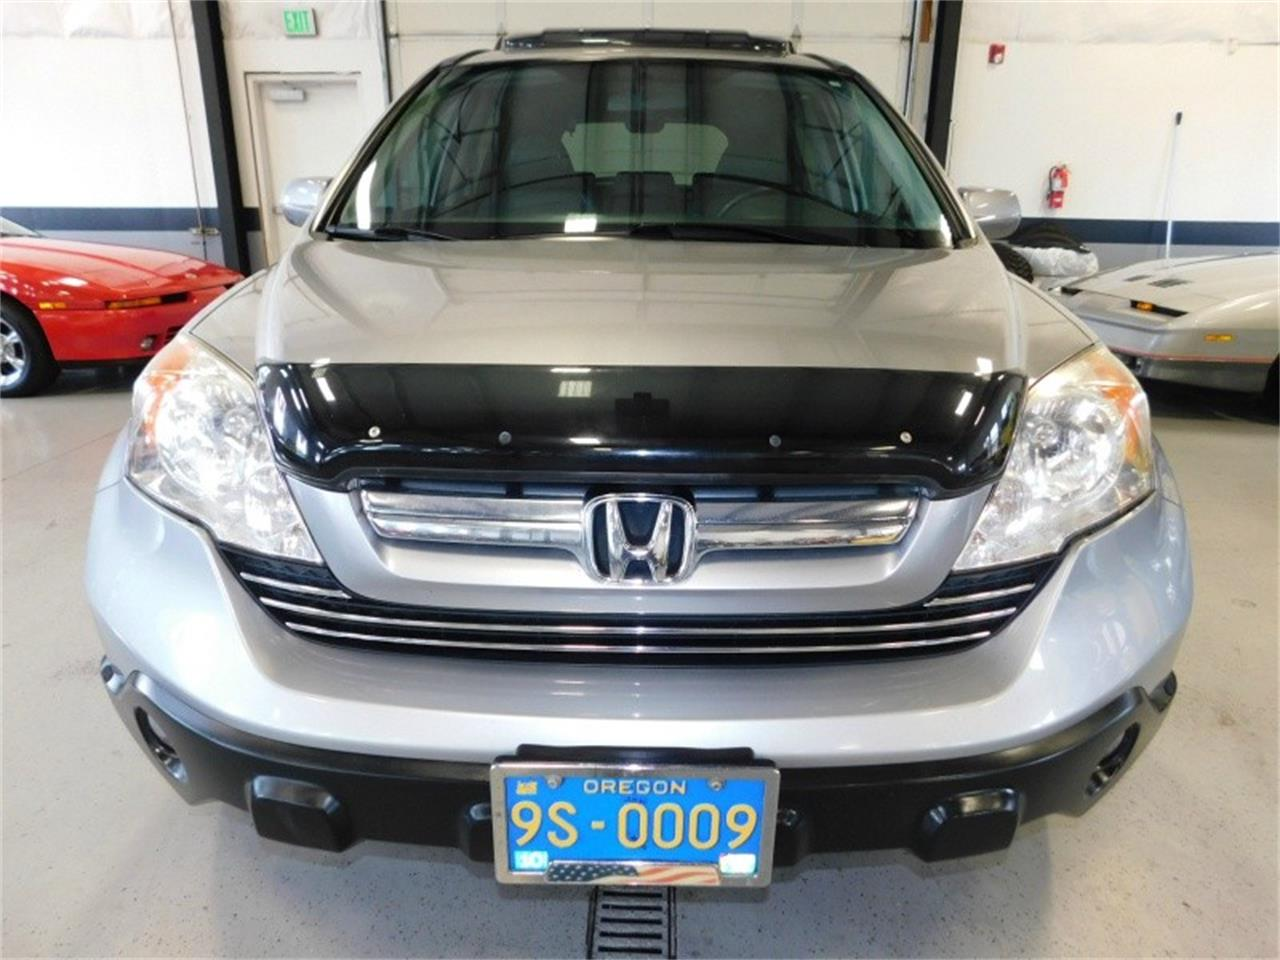 Large Picture of 2008 CRV located in Bend Oregon - $12,495.00 Offered by Bend Park And Sell - QPWW